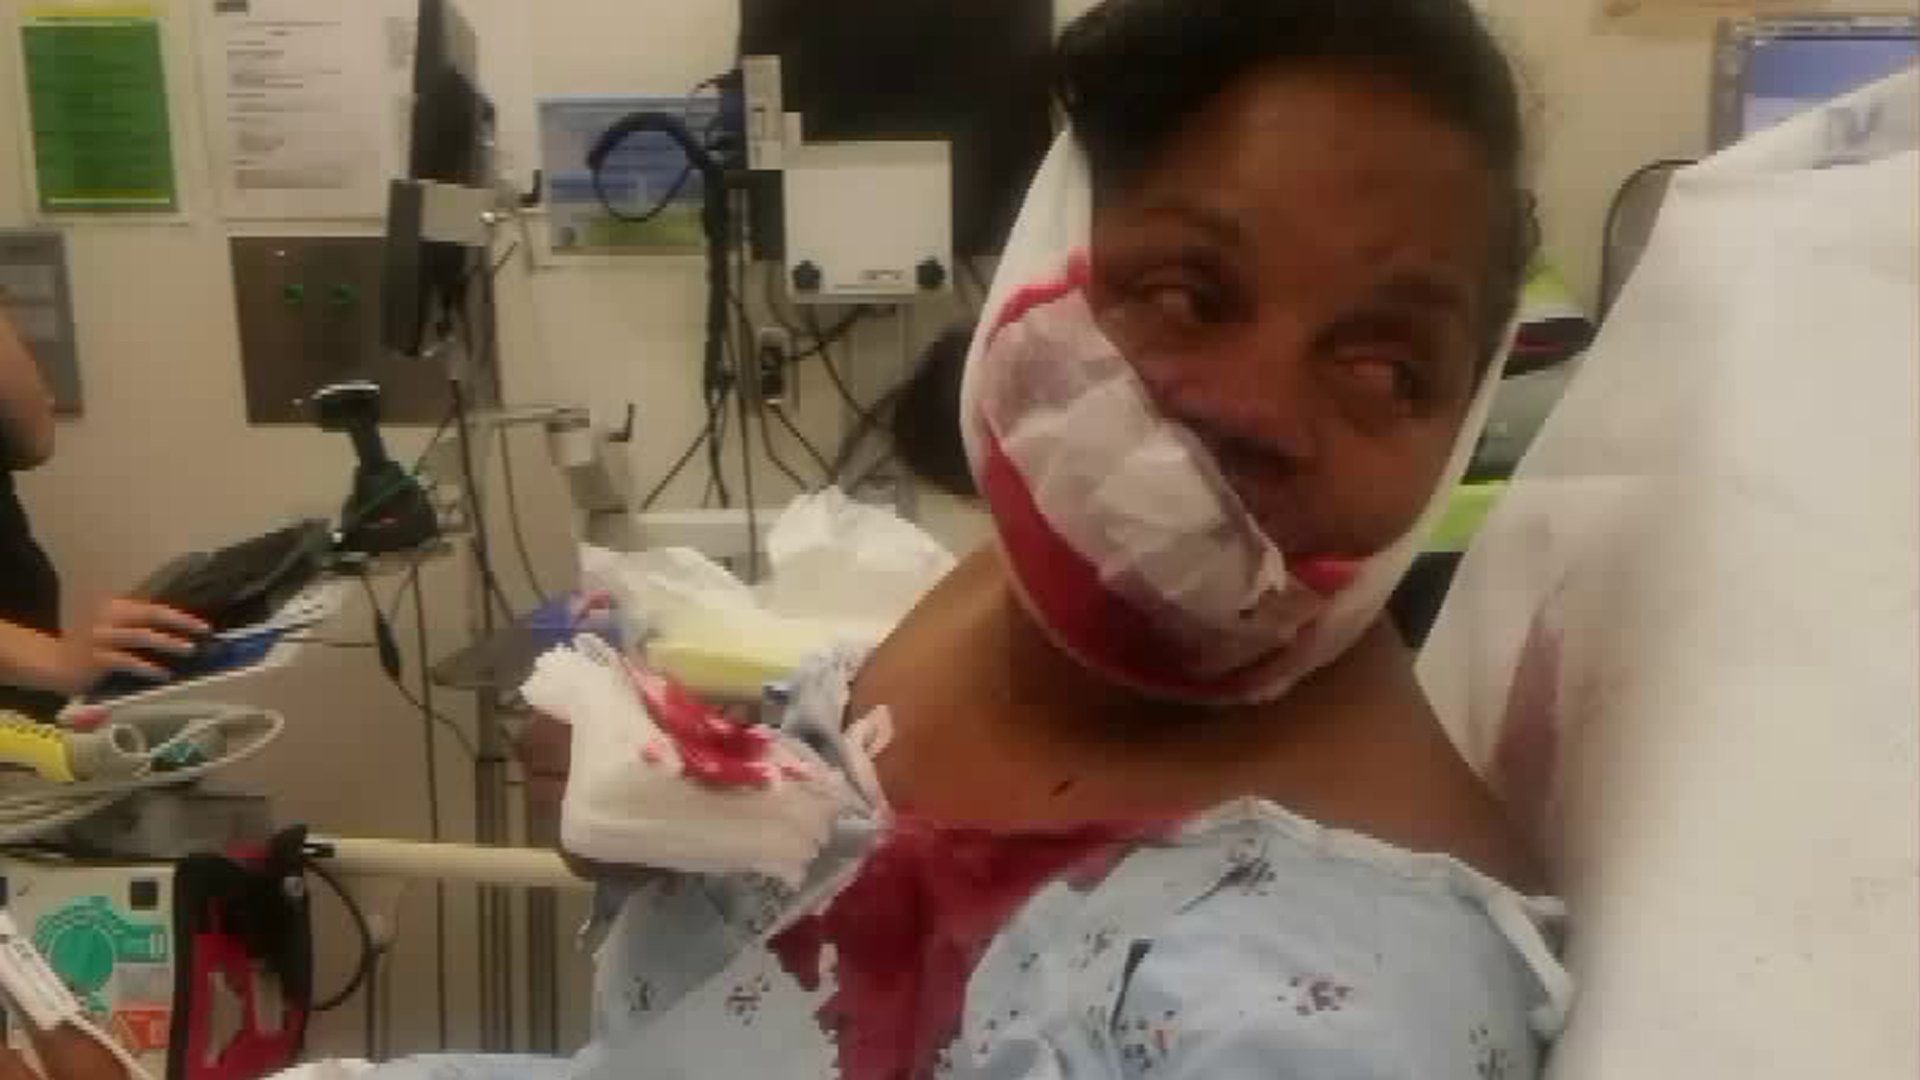 Darlecia D'Andrade is shown in a photo she provided to KTLA after she was injured in a random attack in Carson on June 16, 2018.